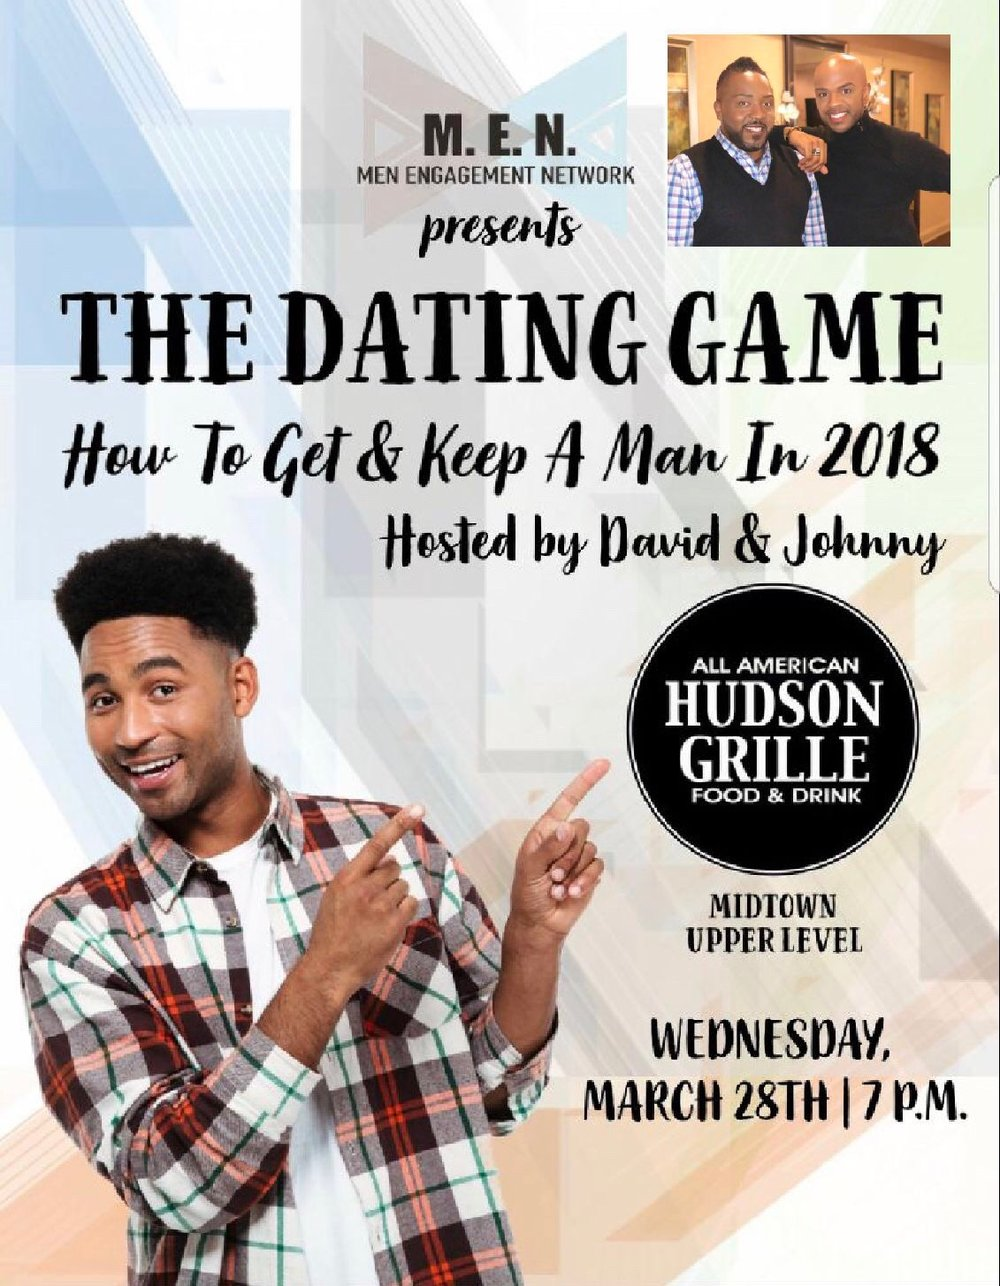 The dating game hostess